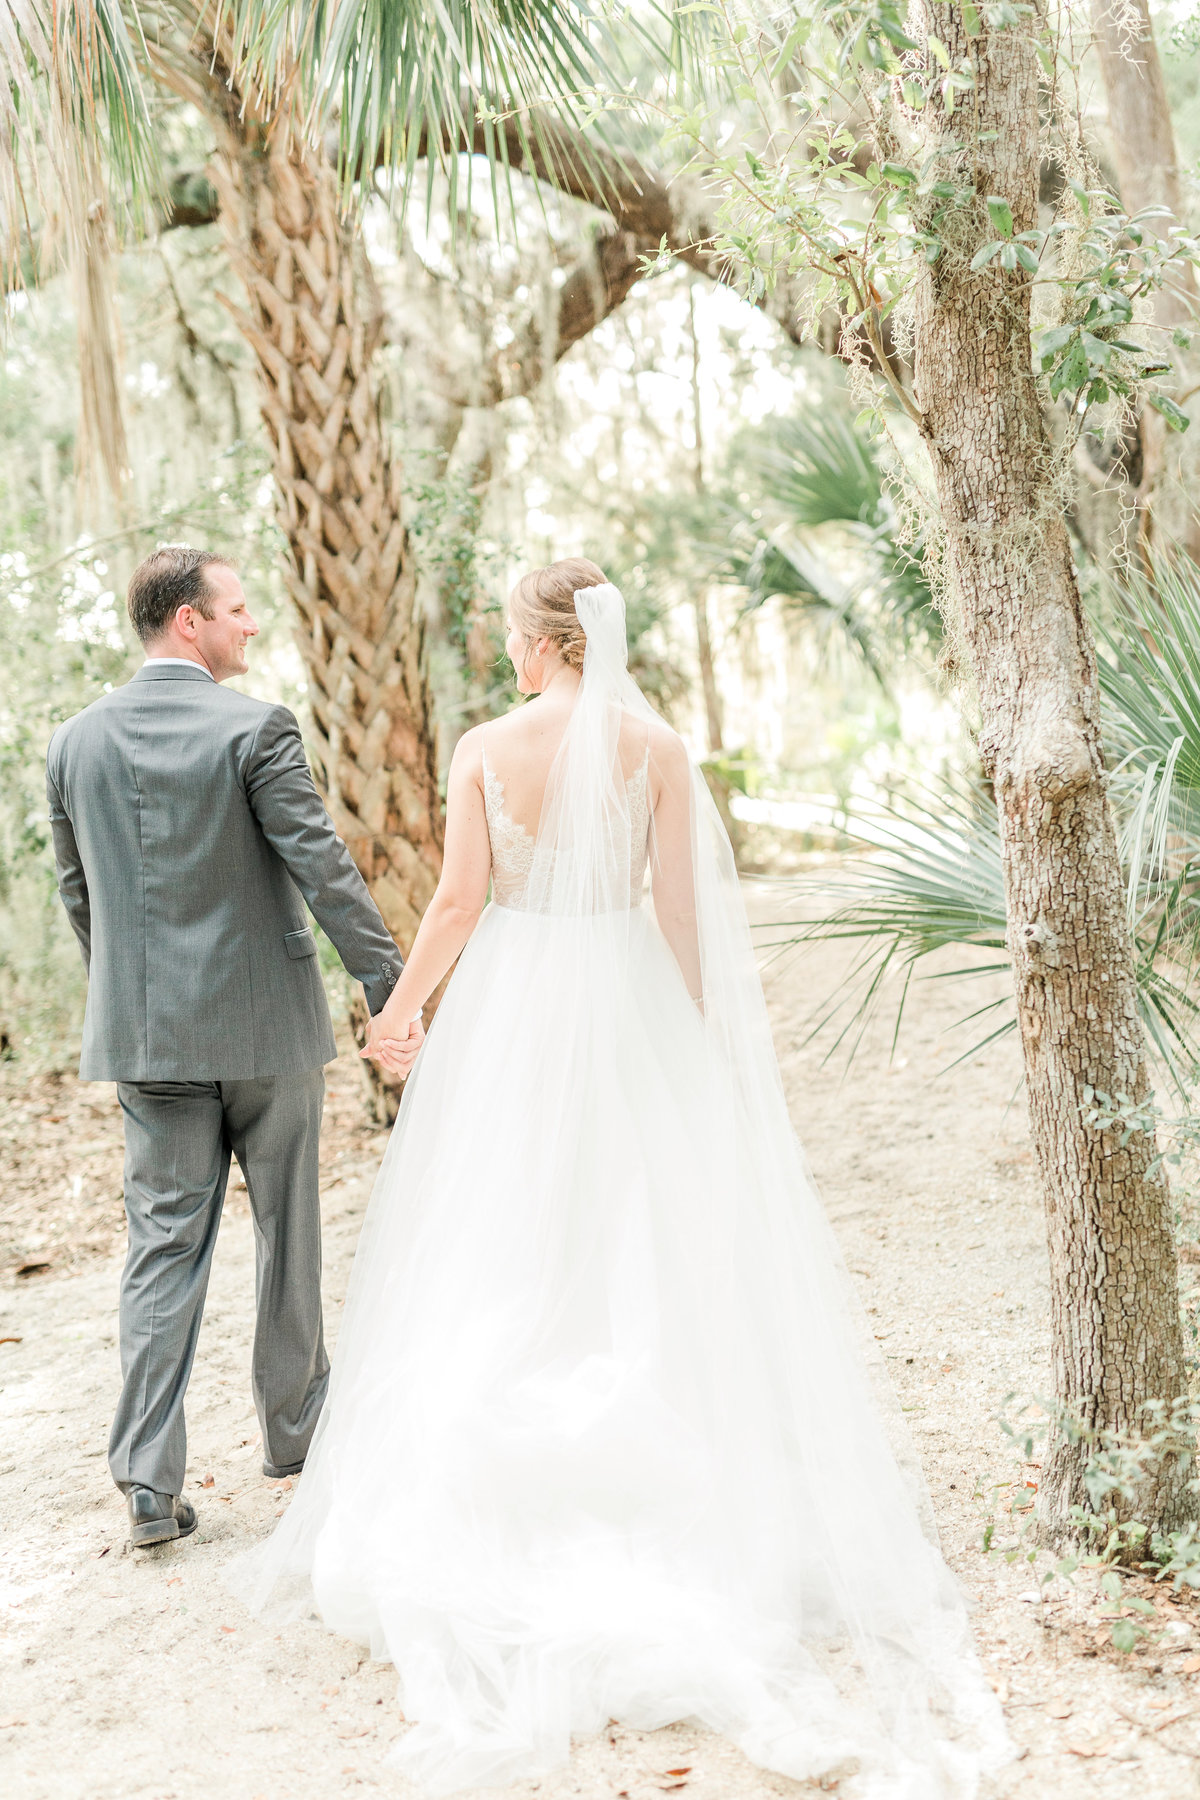 Walkerslandingameliaislandwedding-7200